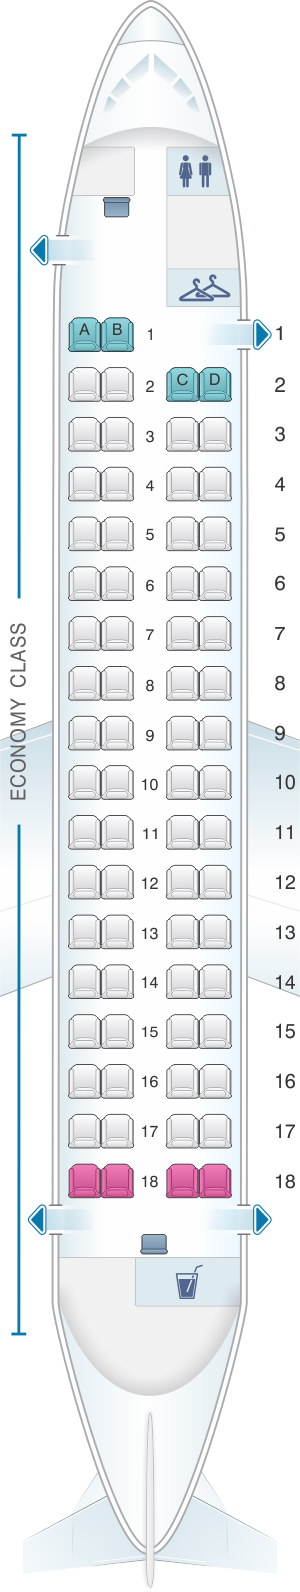 Seat map for Porter Airlines Bombardier Q400